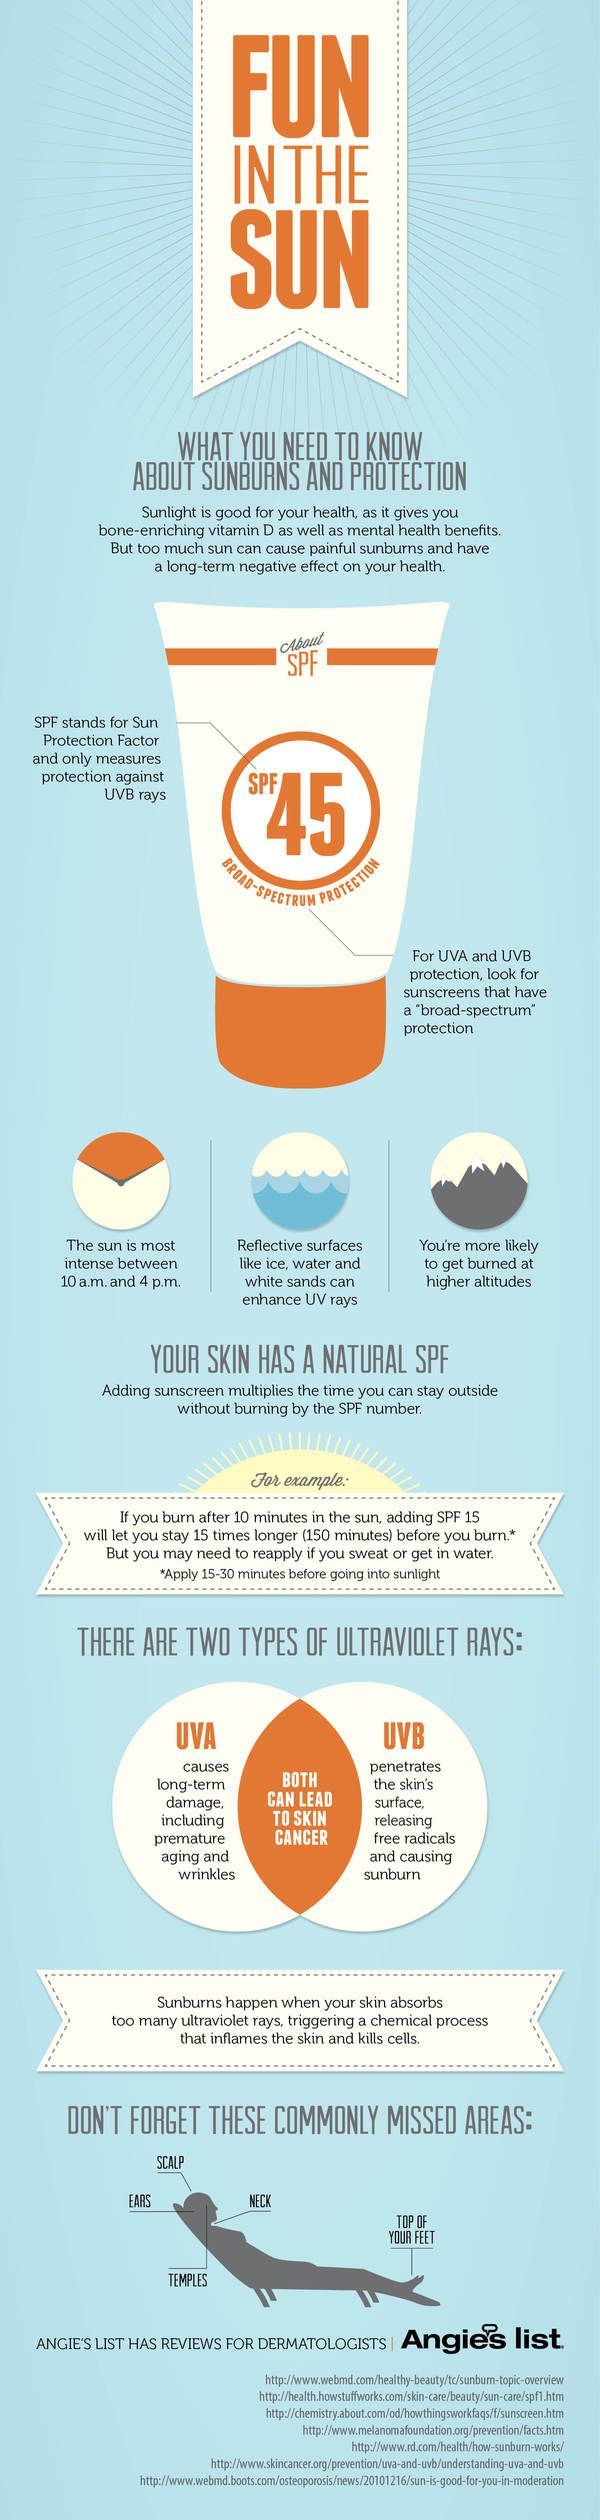 Fun in the Sun: Protecting Your Skin for Sunburns and Skin Cancer (INFOGRAPHIC)